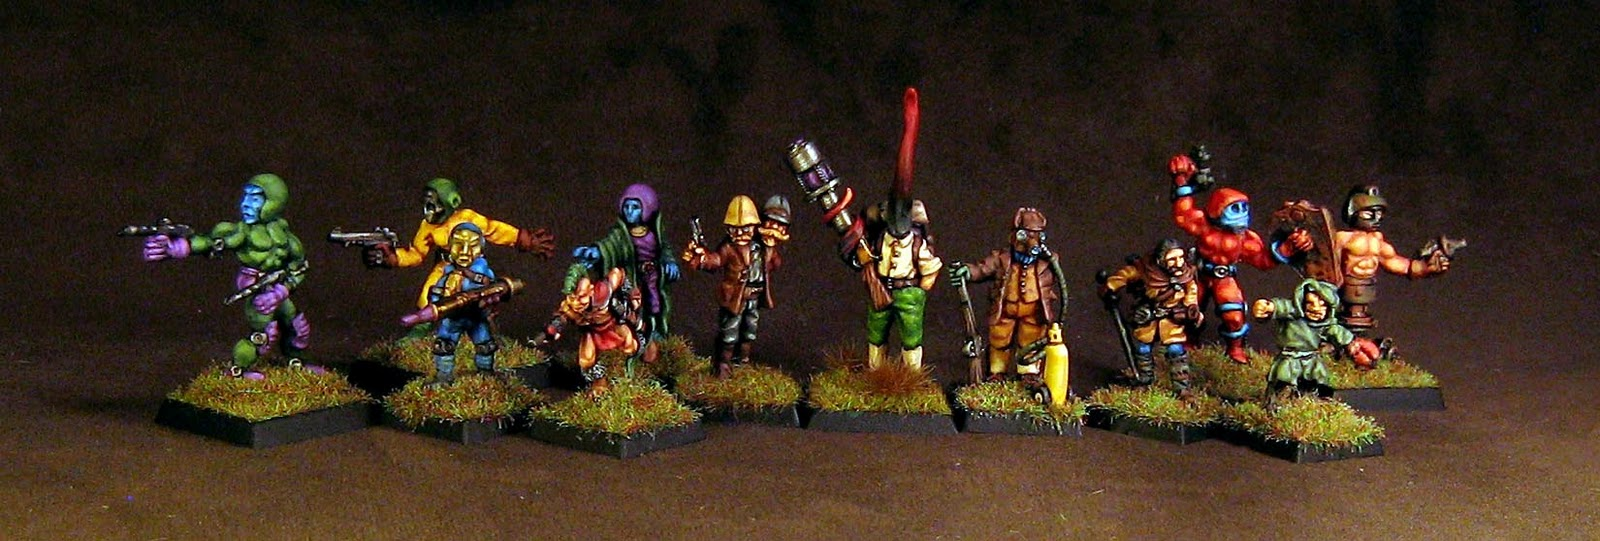 Carmens fun painty time gamma world group shot gamma world group shot publicscrutiny Image collections